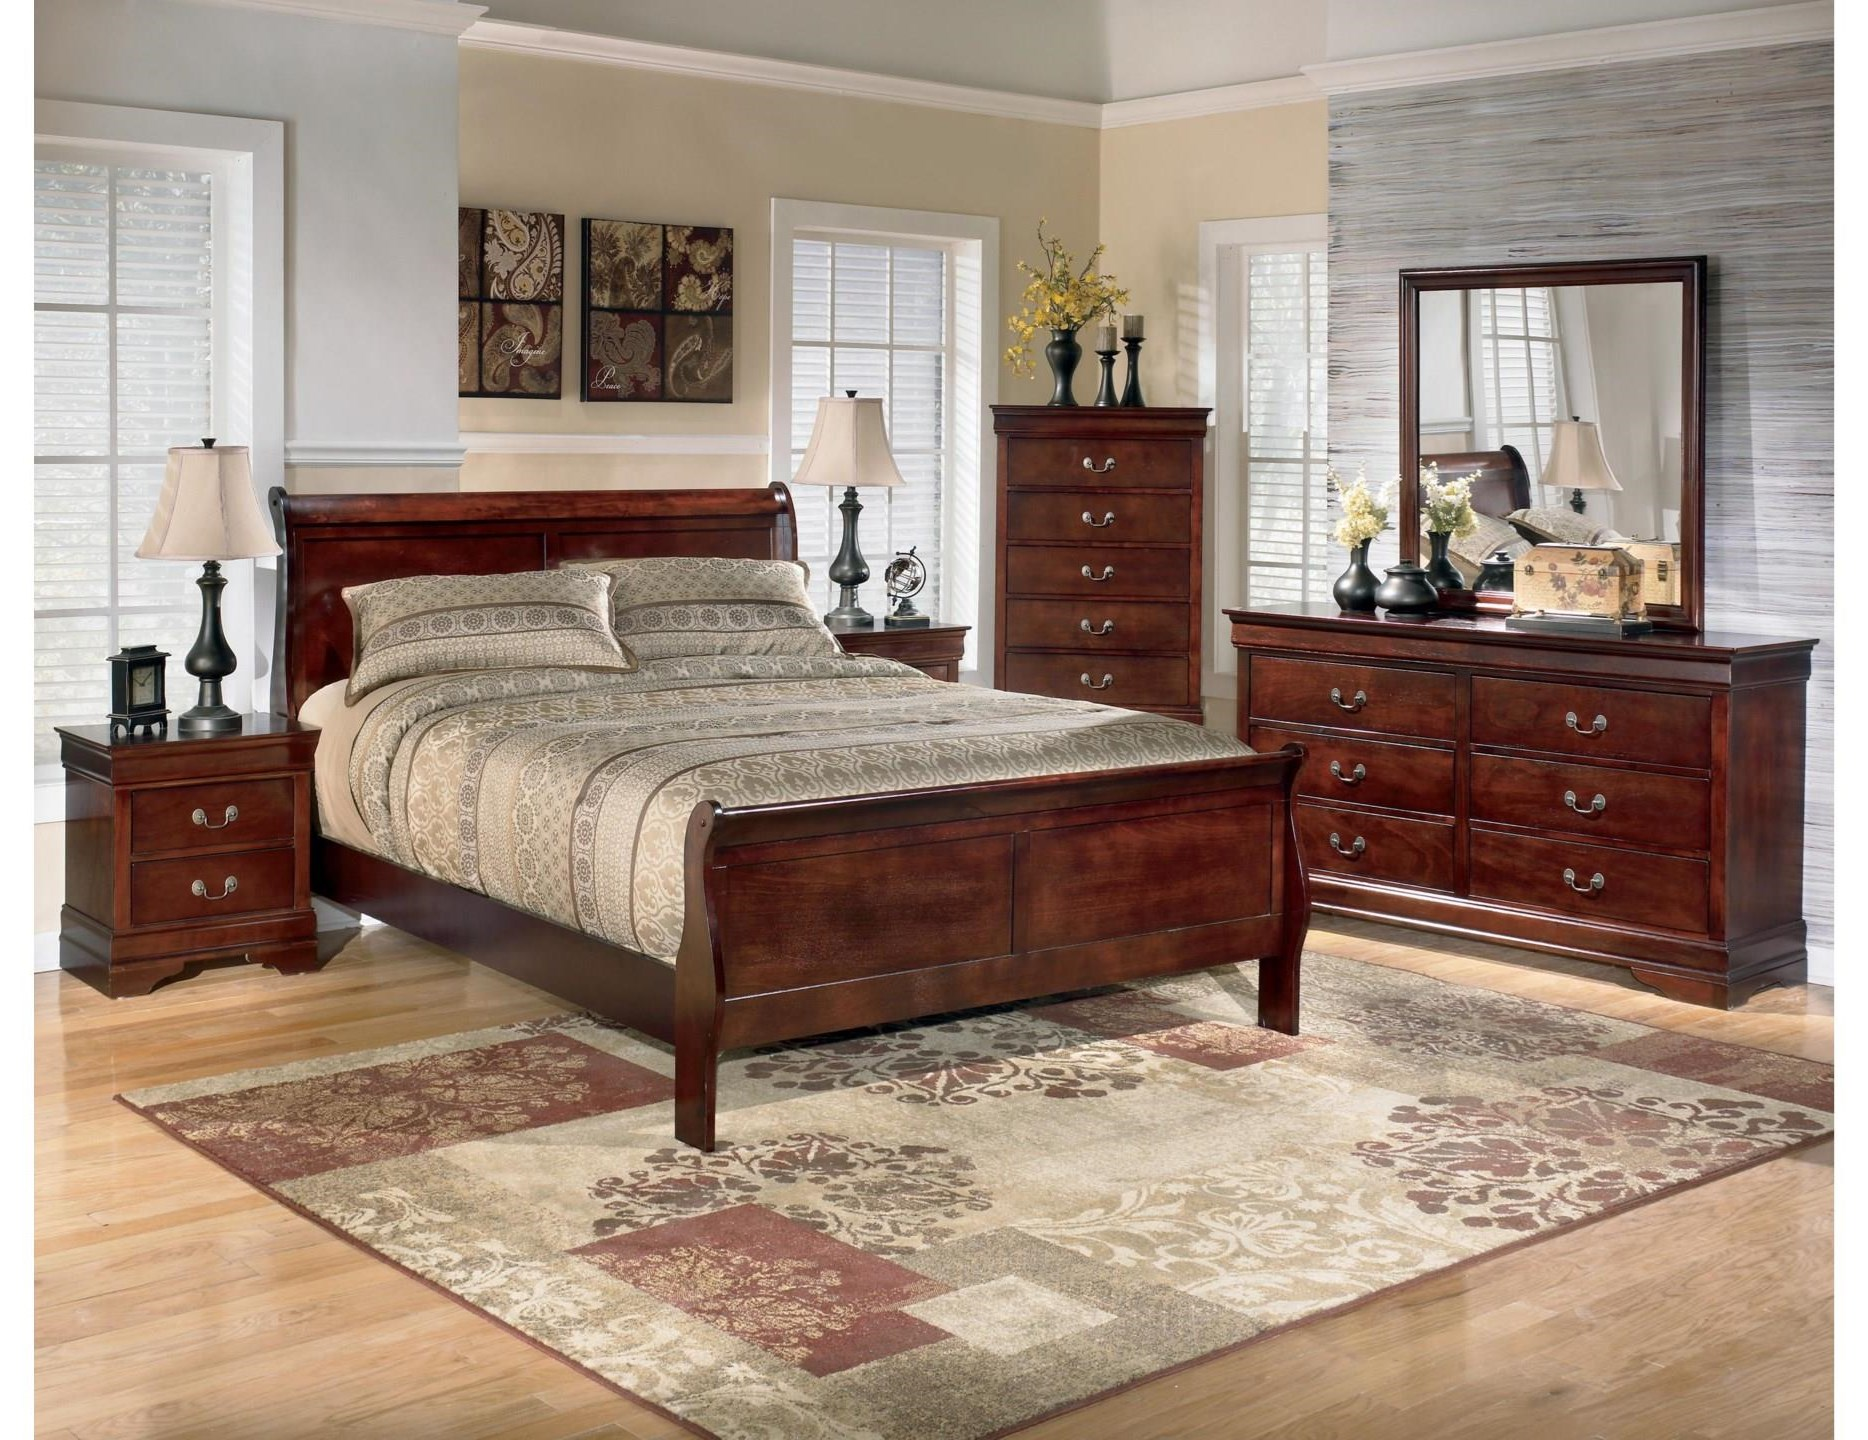 Alisdair 8PC King bedroom group by Signature Design by Ashley at Value City Furniture